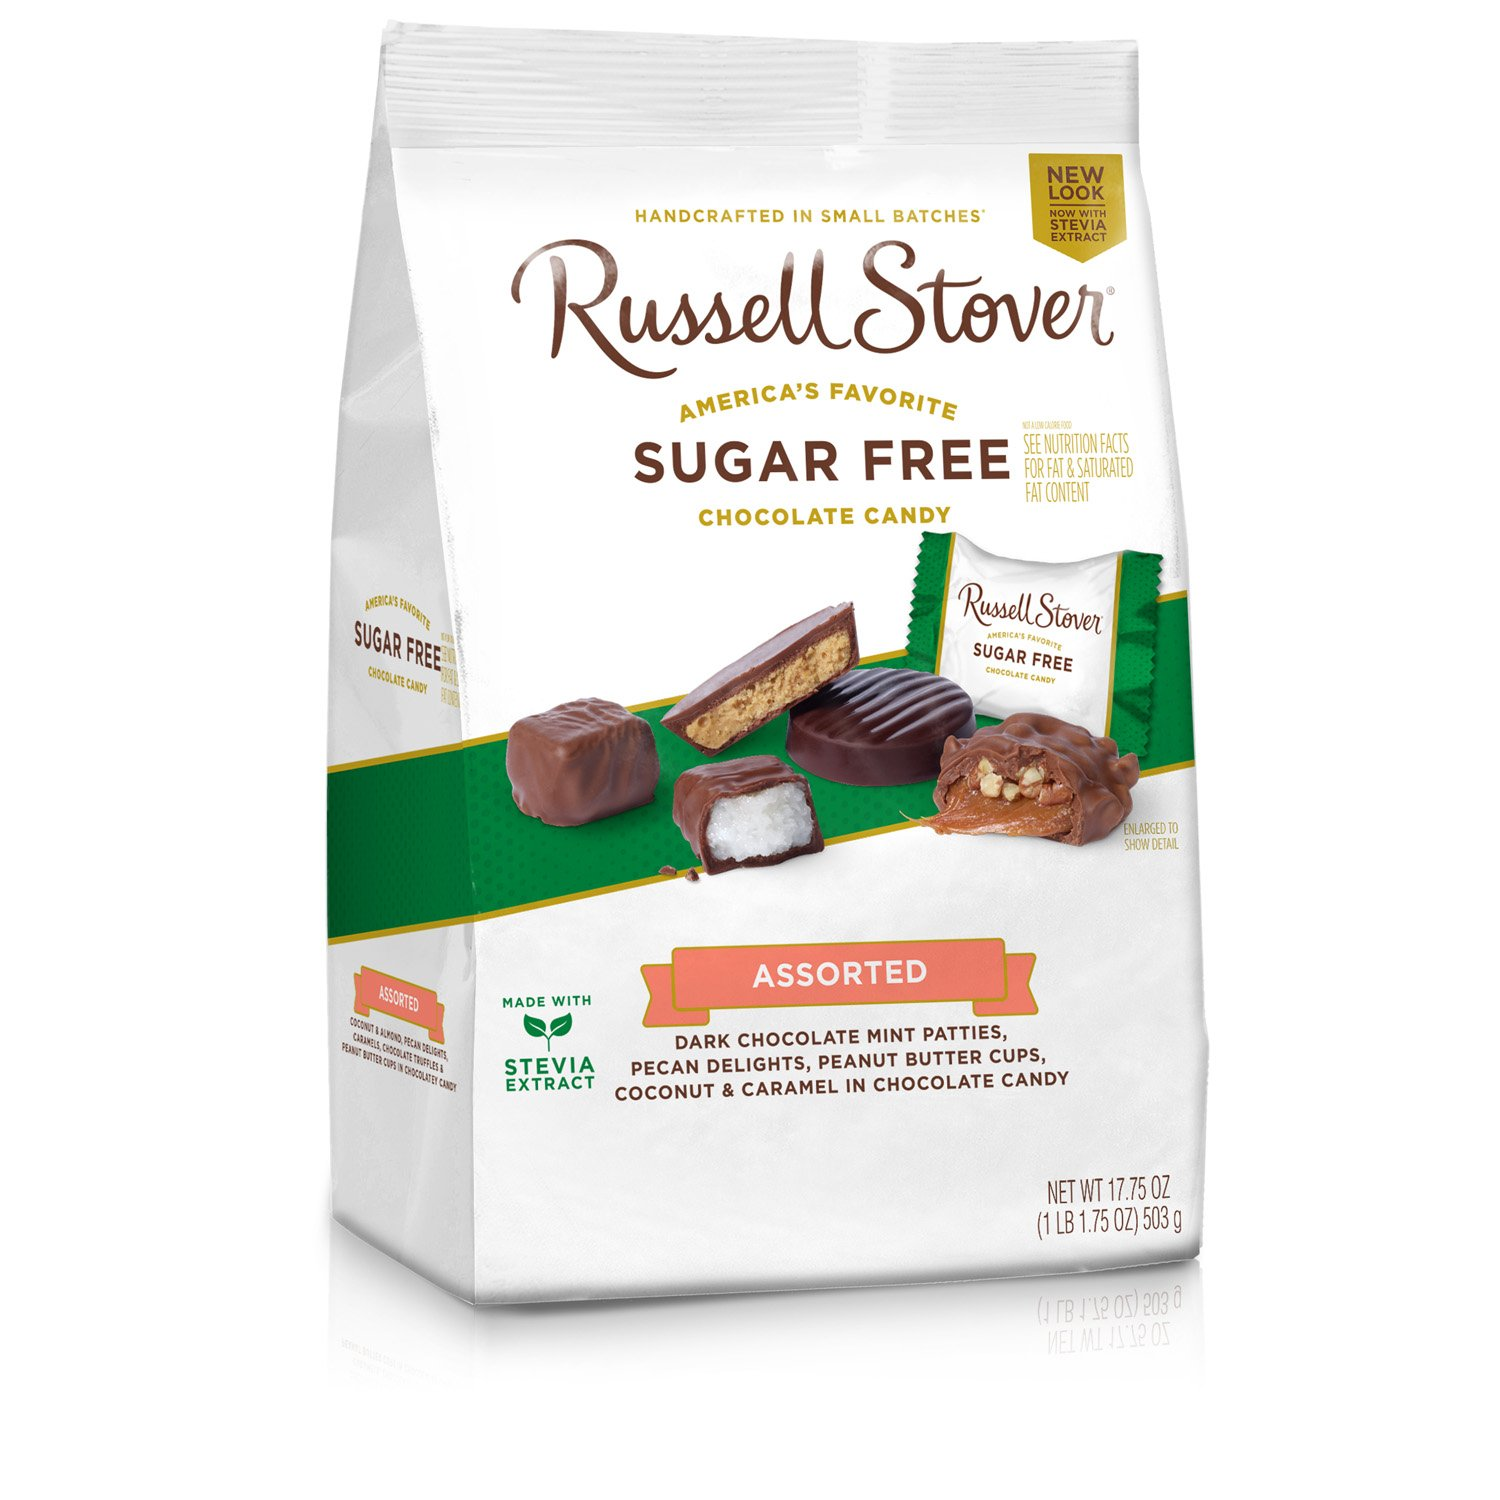 Russell Stover Sugar Free Assortment, 17.85 Ounce Bag, 4 Count